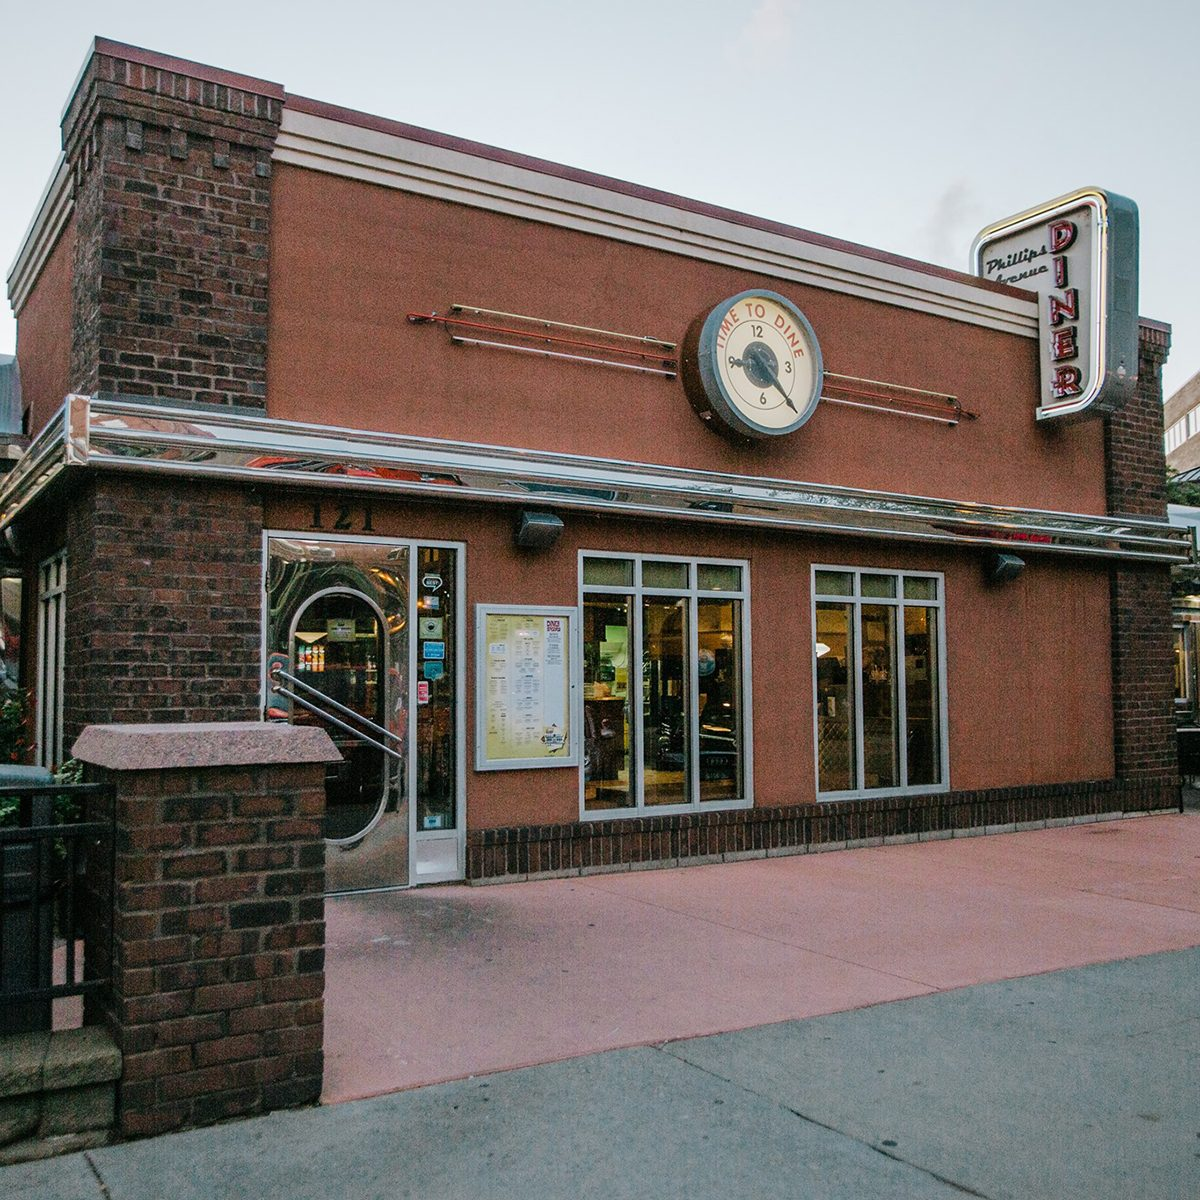 The Phillips Avenue Diner